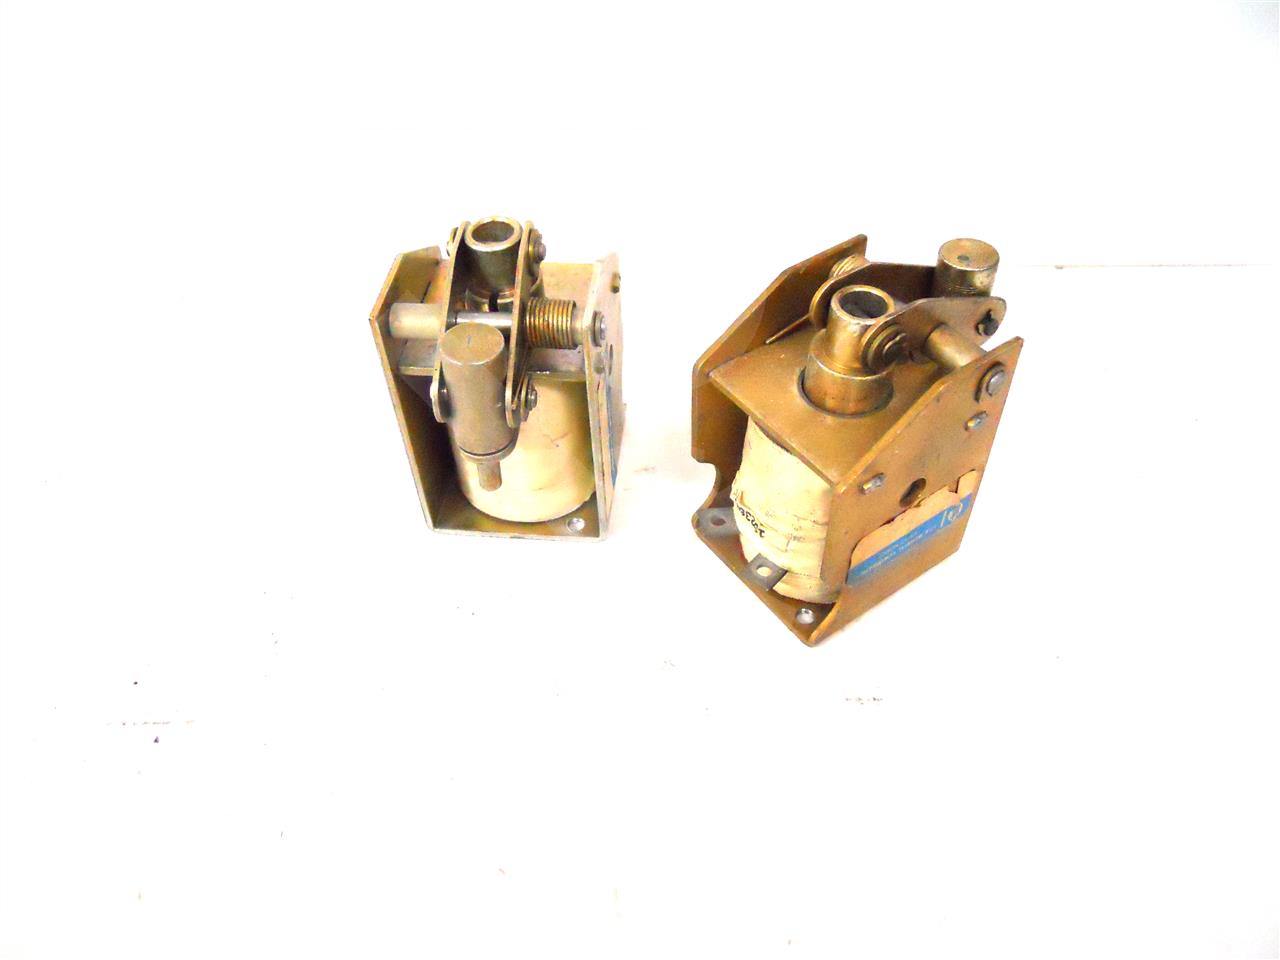 191920-T20 ITE 48VDC TRIP / CLOSE COIL ASSEMBLY FOR HK